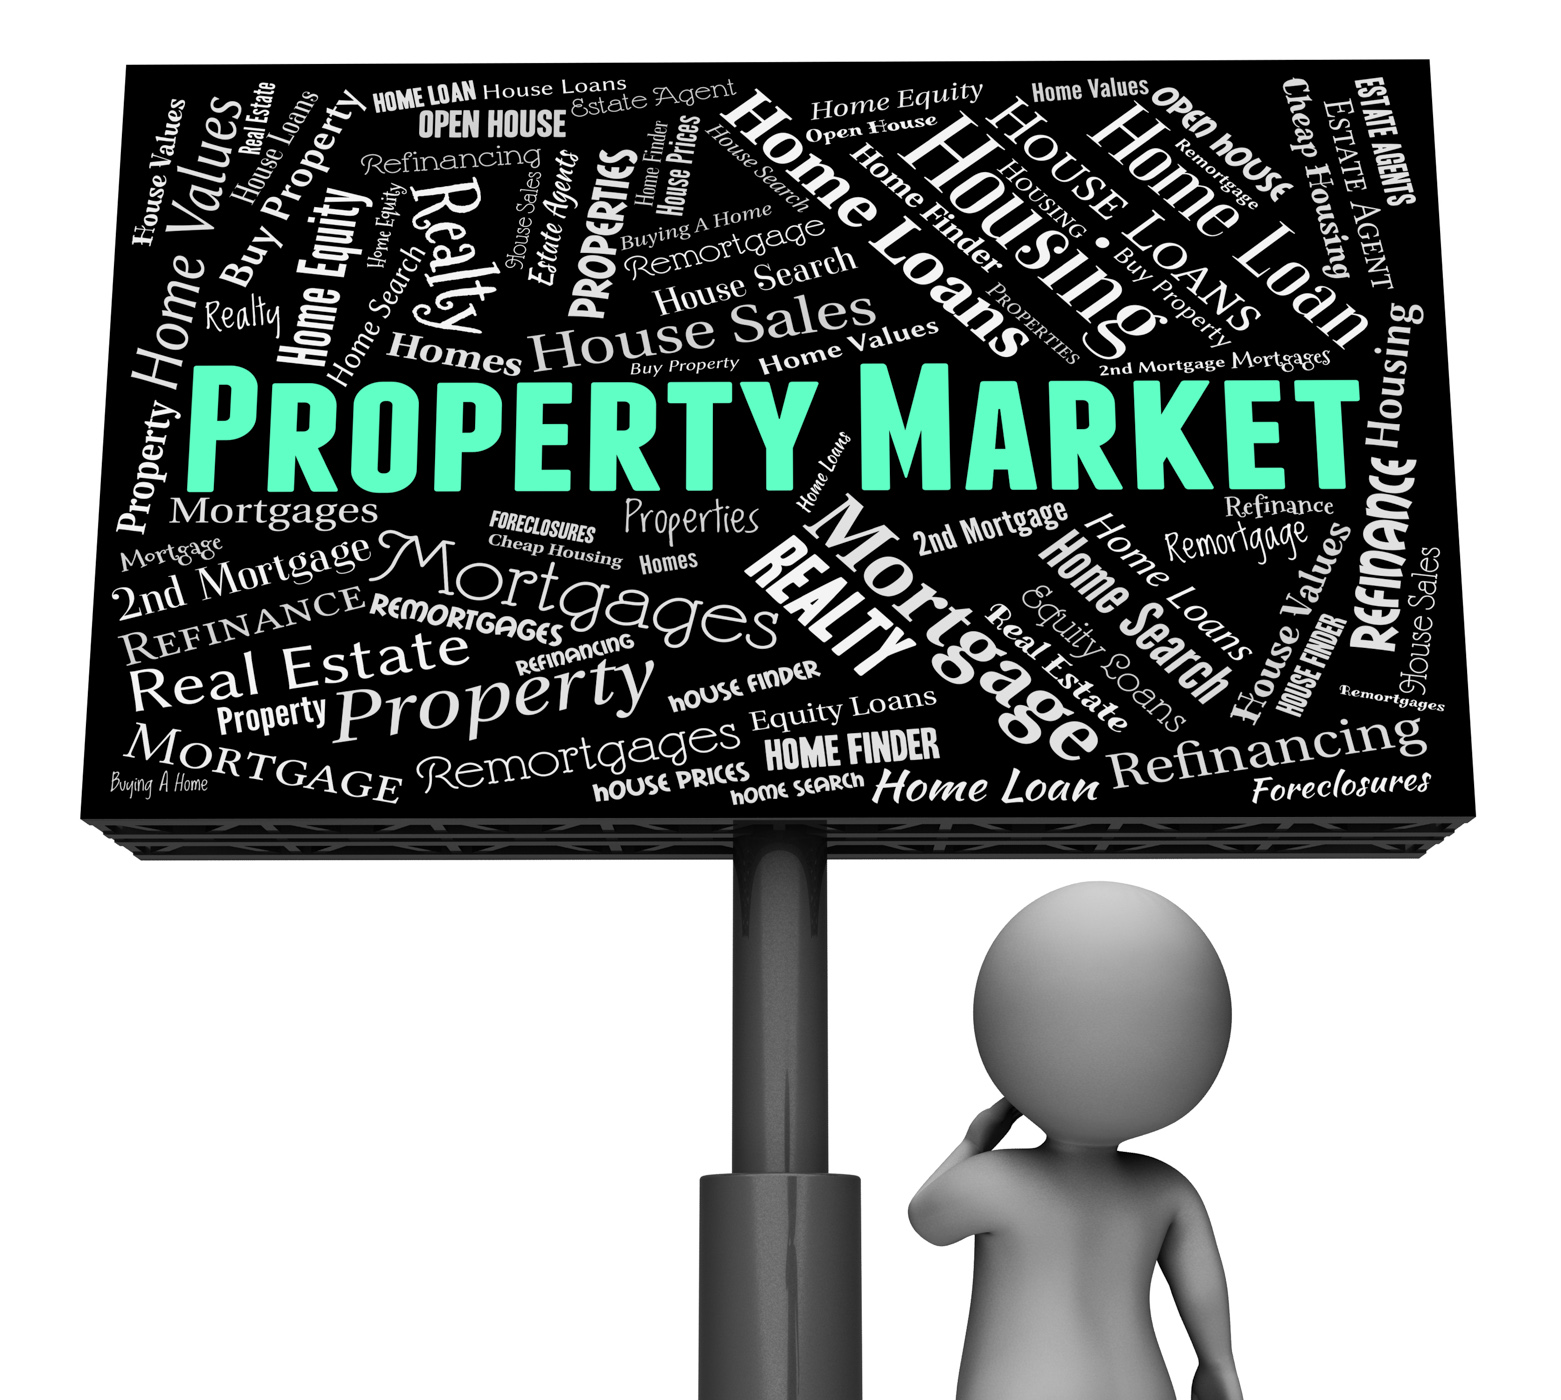 Property market indicates for sale and apartments photo